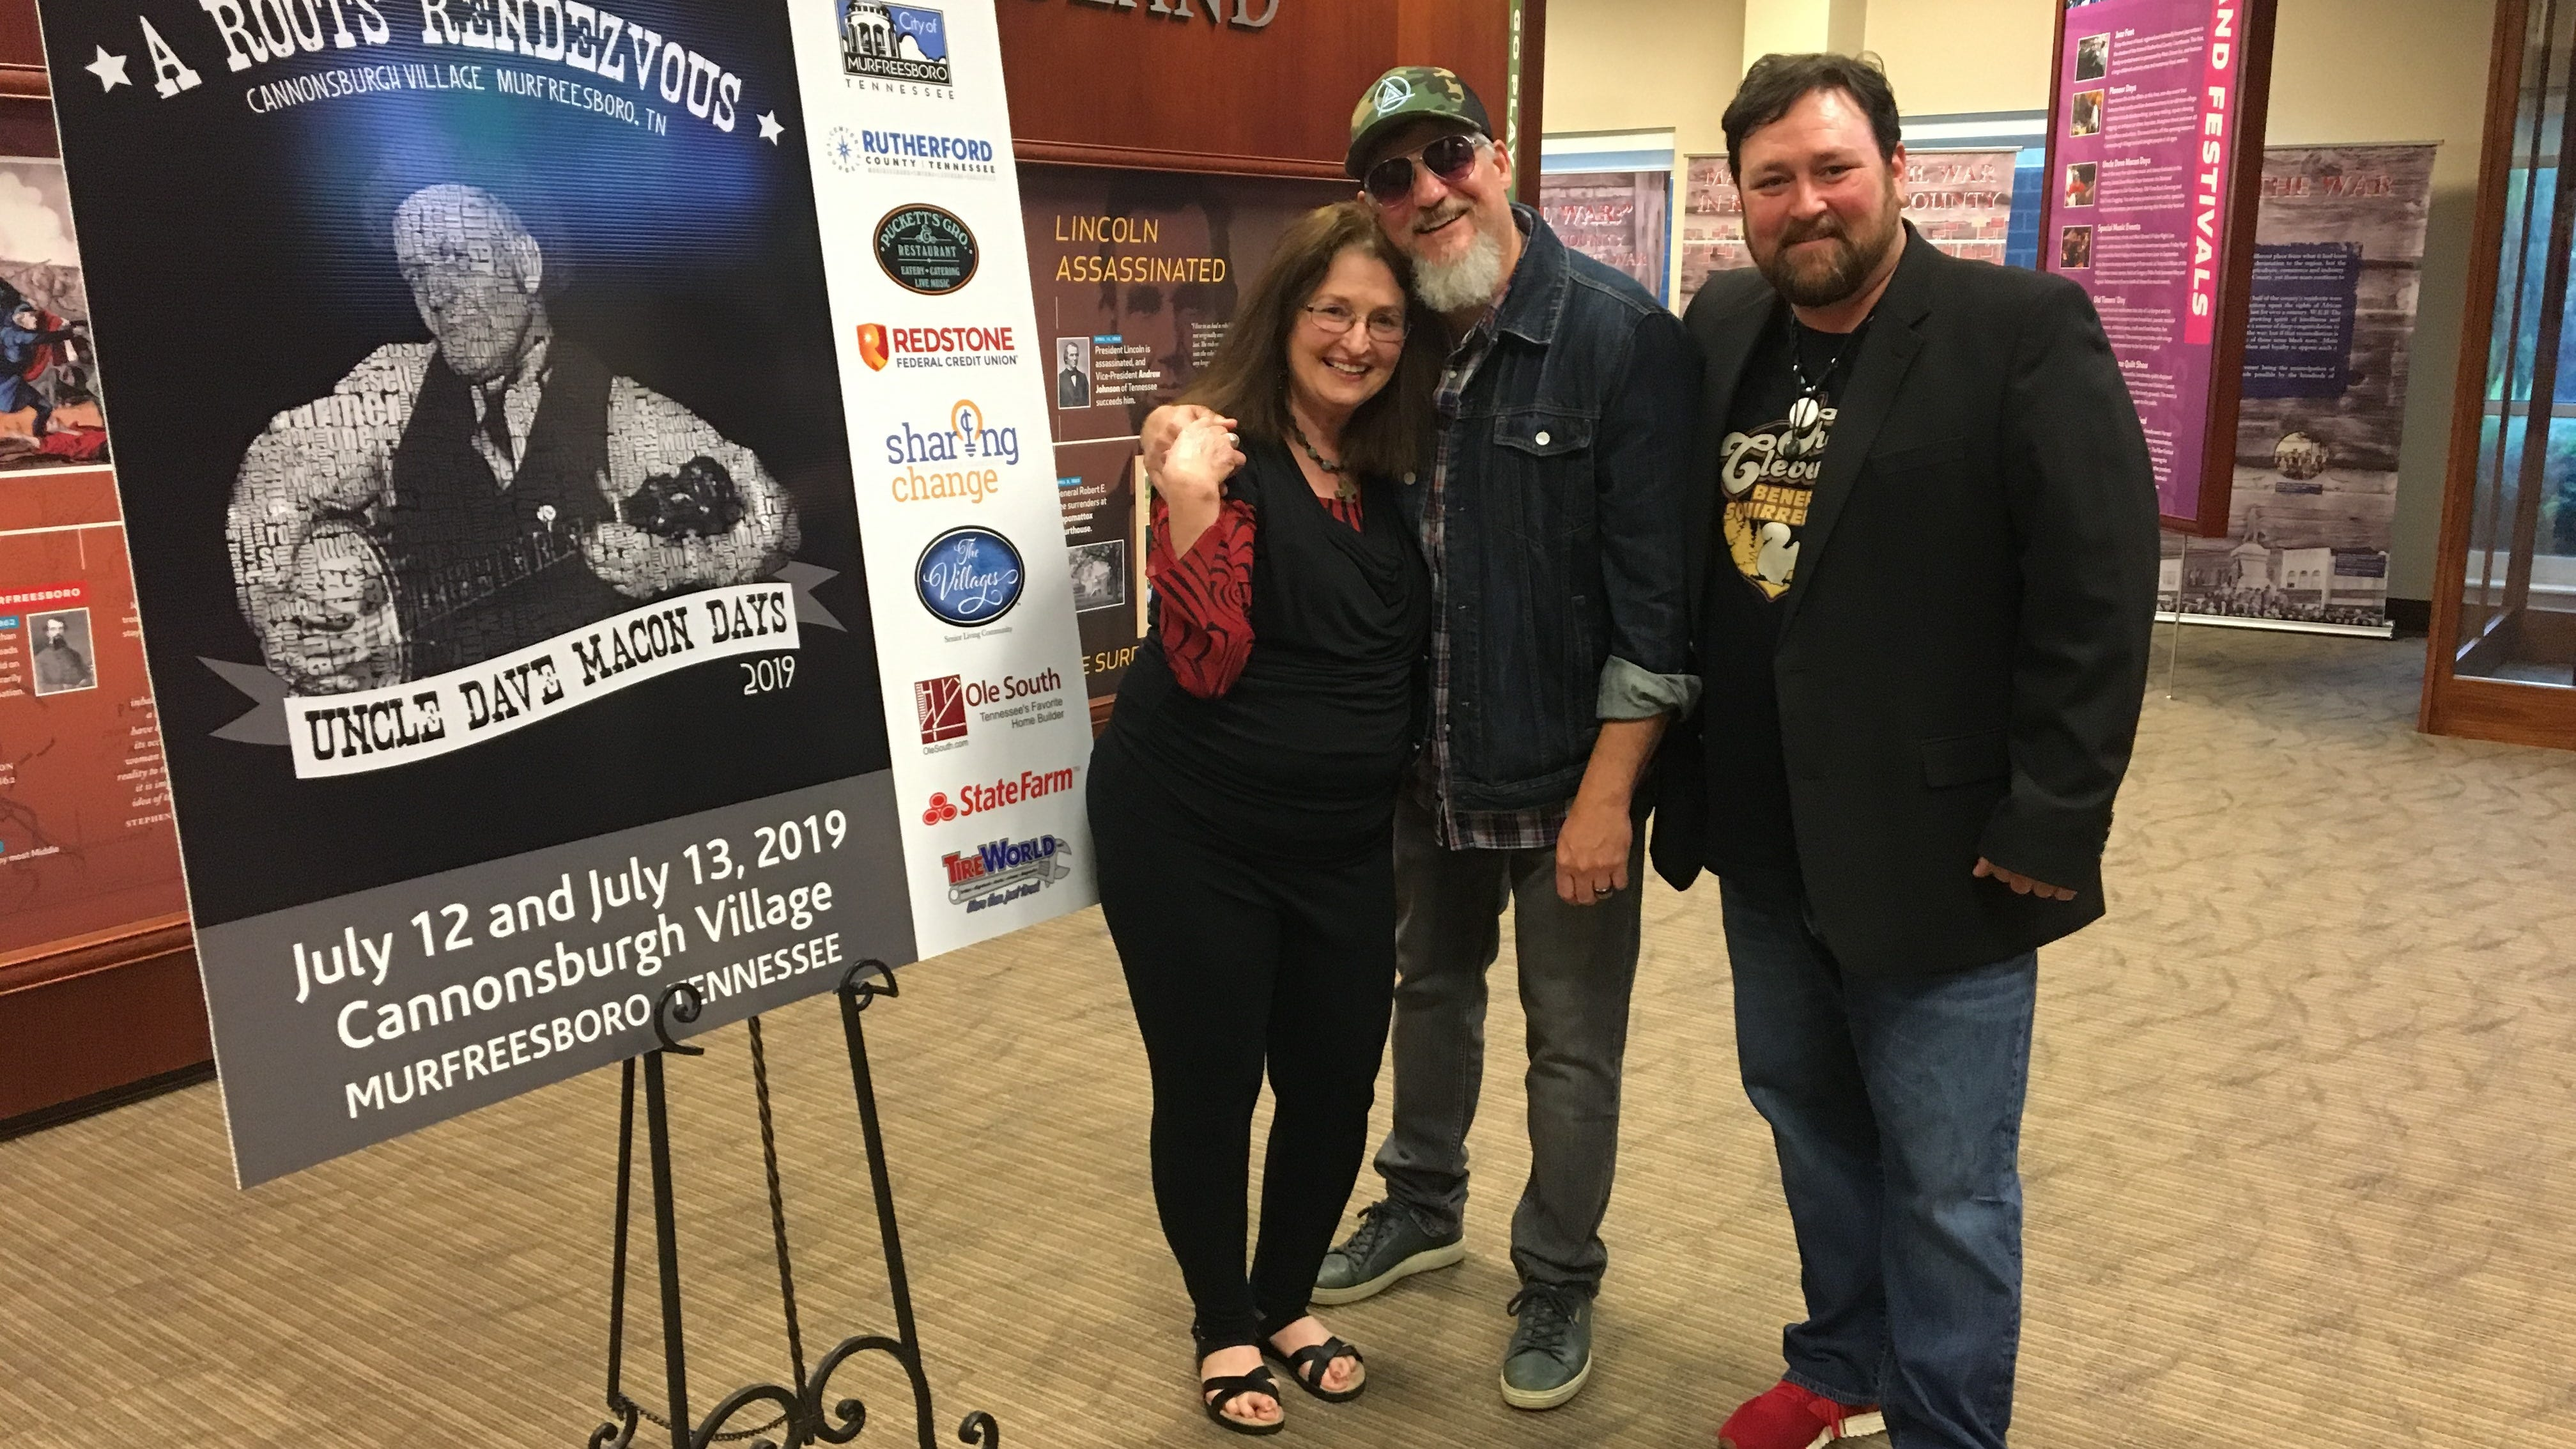 Uncle Dave Macon Days president Gloria Christy, left, and festival director Ben Wilson, right, stand with Paul Harris of The Cleverlys, a featured act at this year's event set for July 12-13 in Murfreesboro.